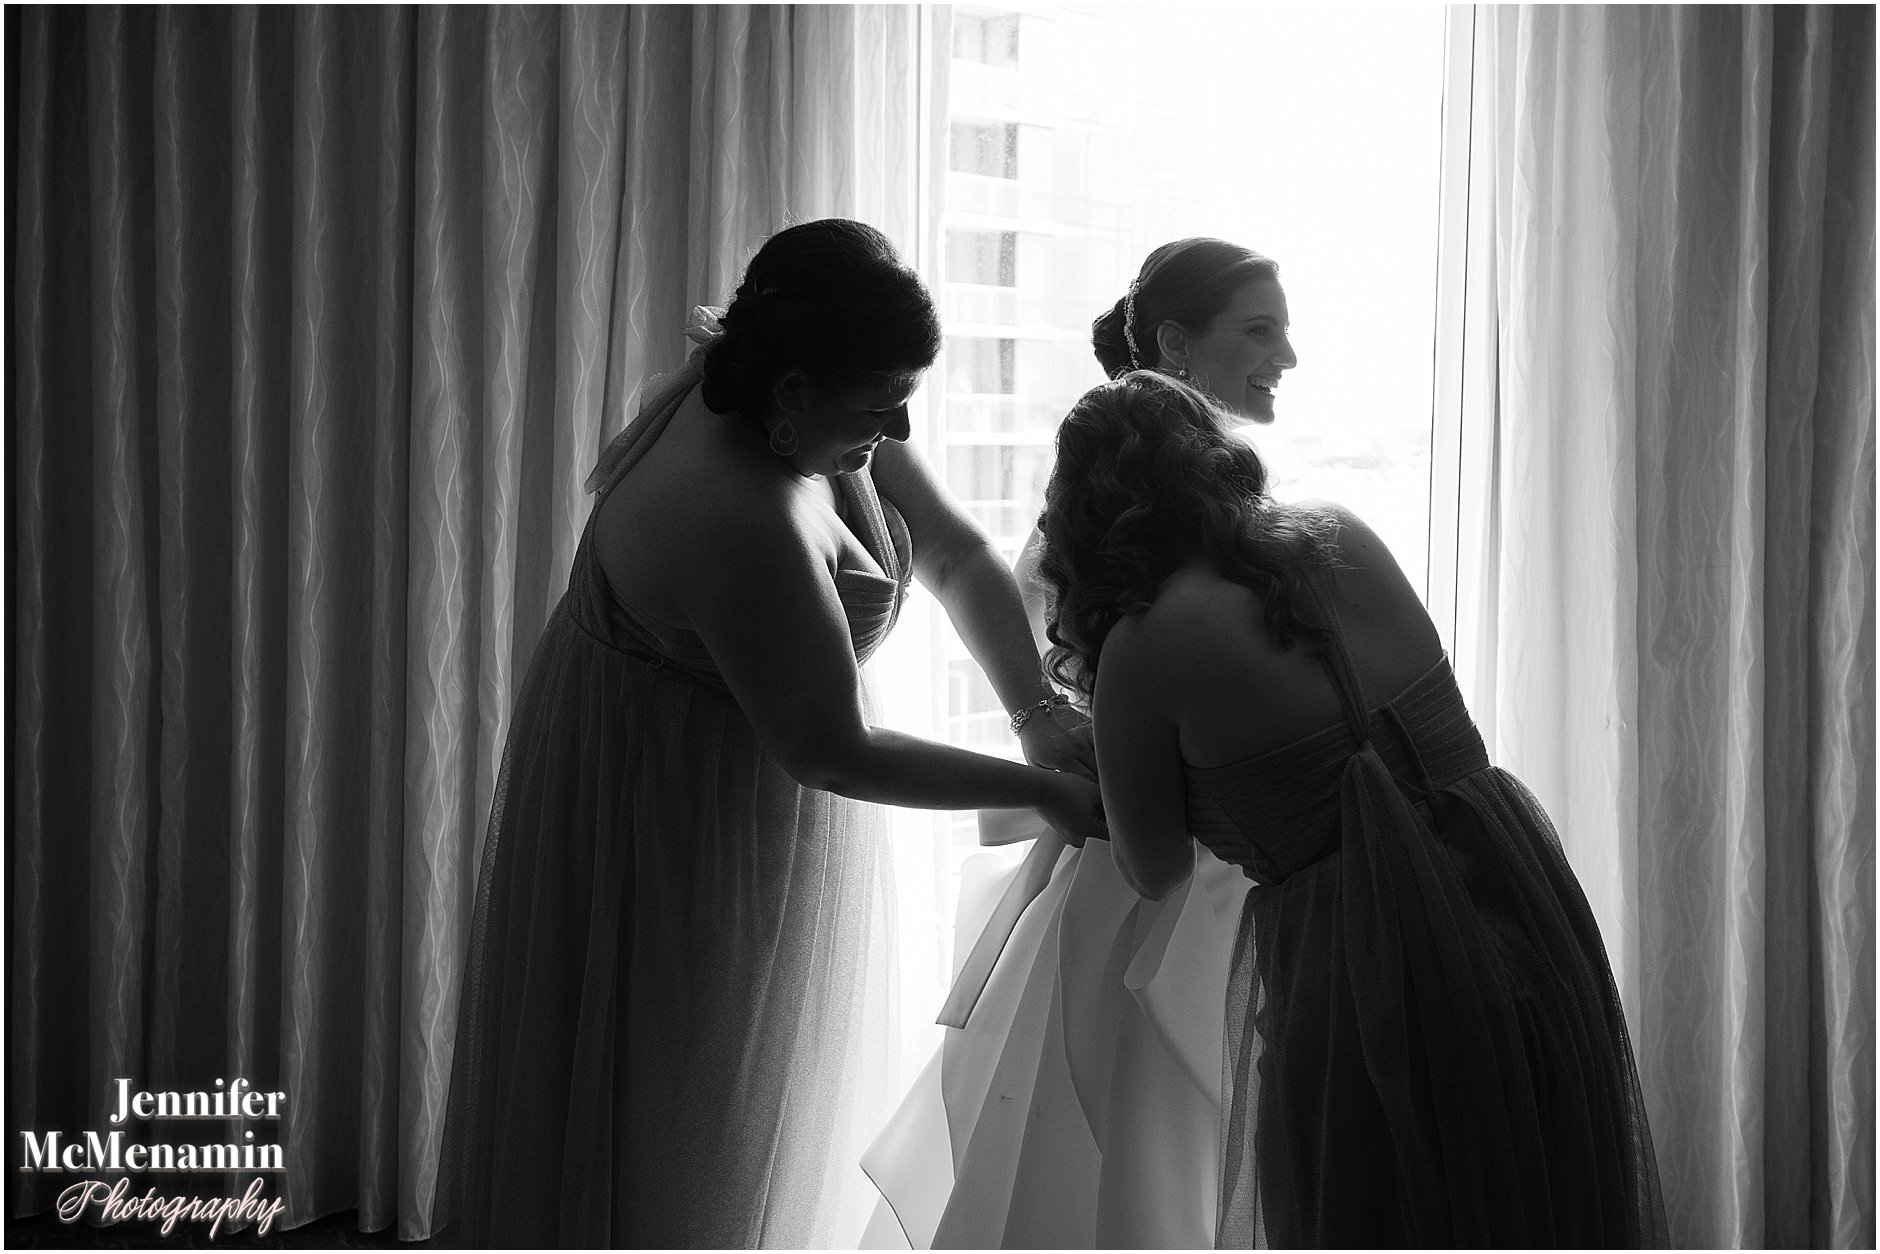 015-Jennifer-McMenamin-Photography-Baltimore-Waterfront-Marriott-wedding_0013